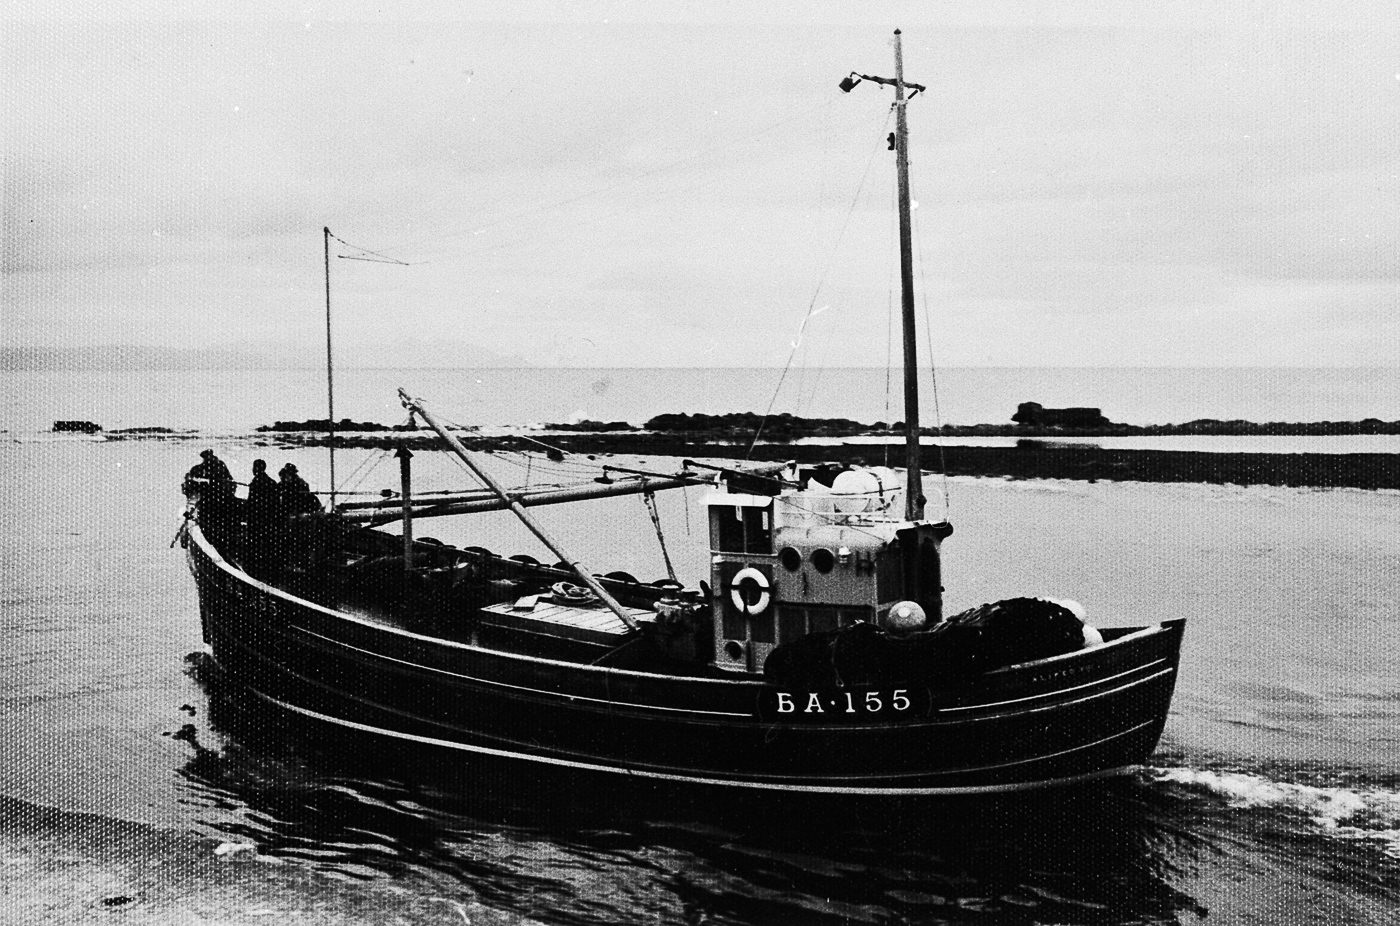 Ringnetter 'Aliped VIII', BA155, in harbour, Girvan. She was owned by the McCrindle family of Girvan.